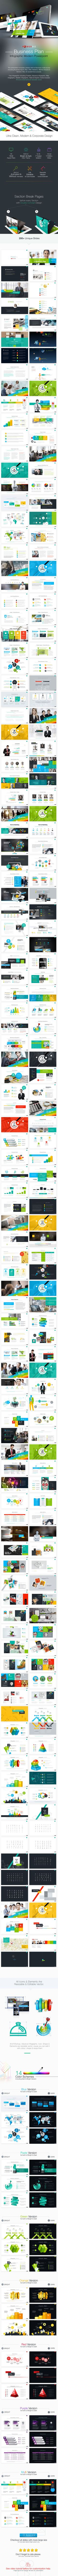 Business Plan Infographic Powerpoint Business Plan & Report Infographic Multipurpose Powerpoint Presentation – PowerBiz Clean, Creative and modern Presentation Template with many factional business needed topic & infographic Many variation included & Fully editable with resizable vector; Easy to change colours, text, photos & other elements.